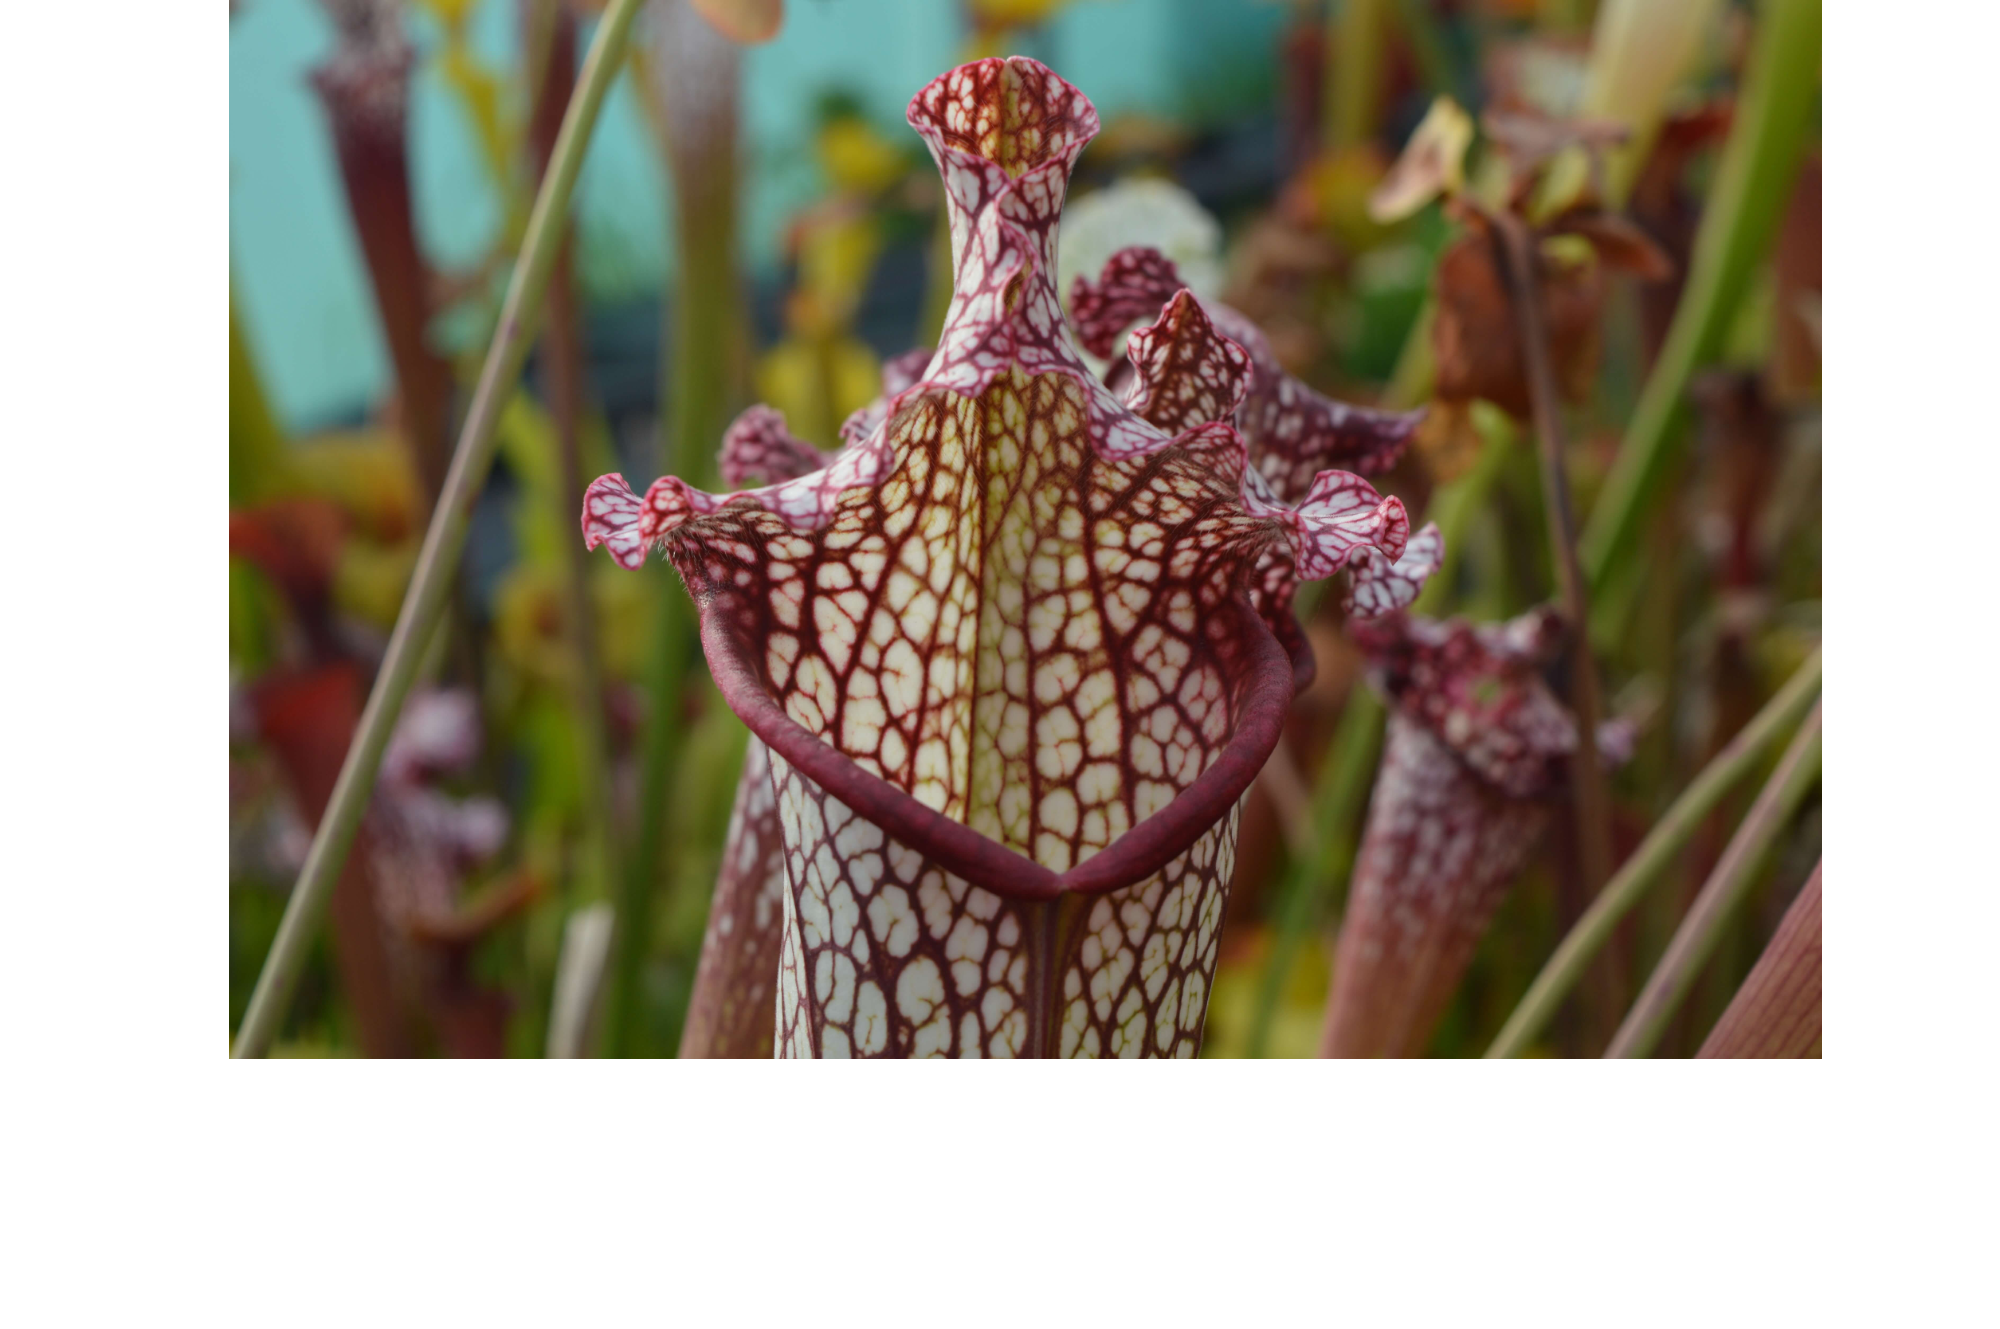 Red and white pitcher plant